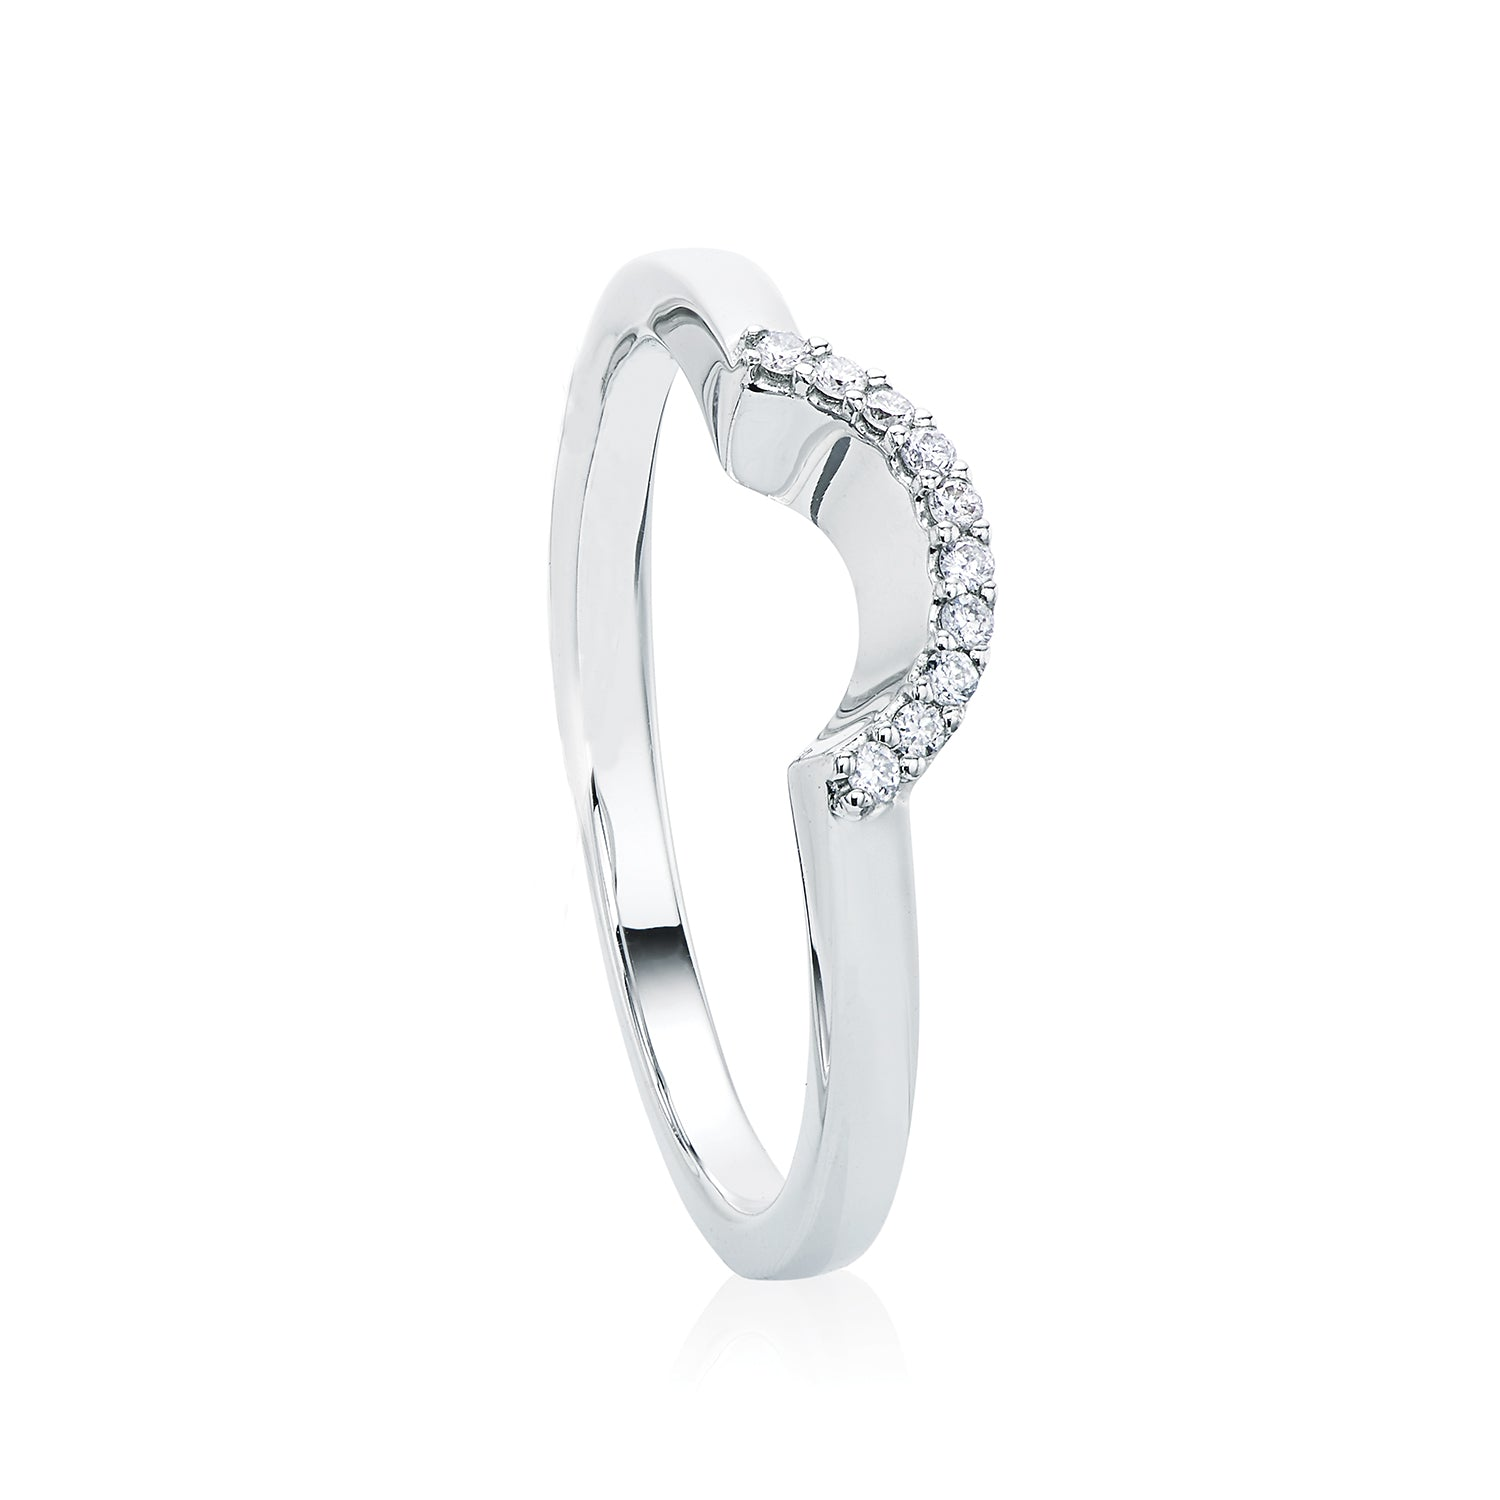 Rand 18ct White Gold Round Brilliant Cut with 0.05 CARAT tw of Diamonds